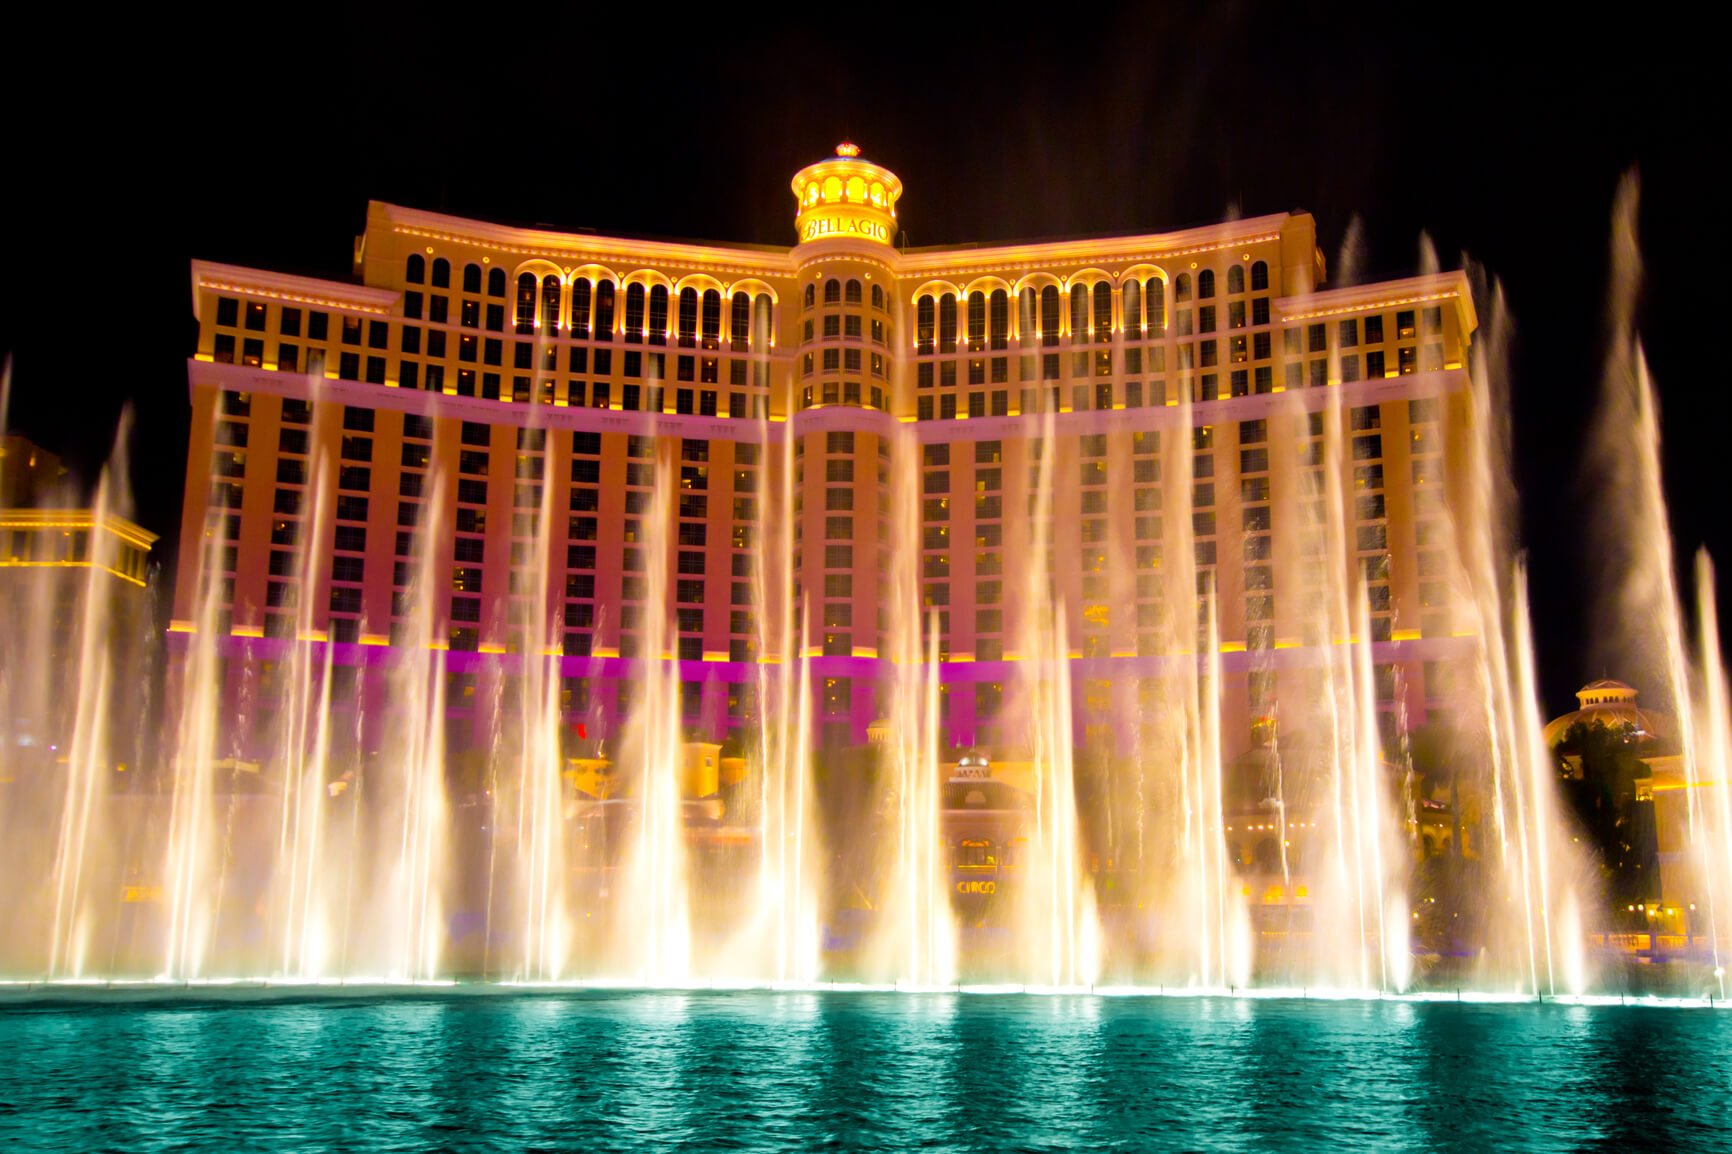 HOT!! SUMMER: Non-stop from Miami to Las Vegas (& vice versa) for only $96 roundtrip (Aug-Nov dates)